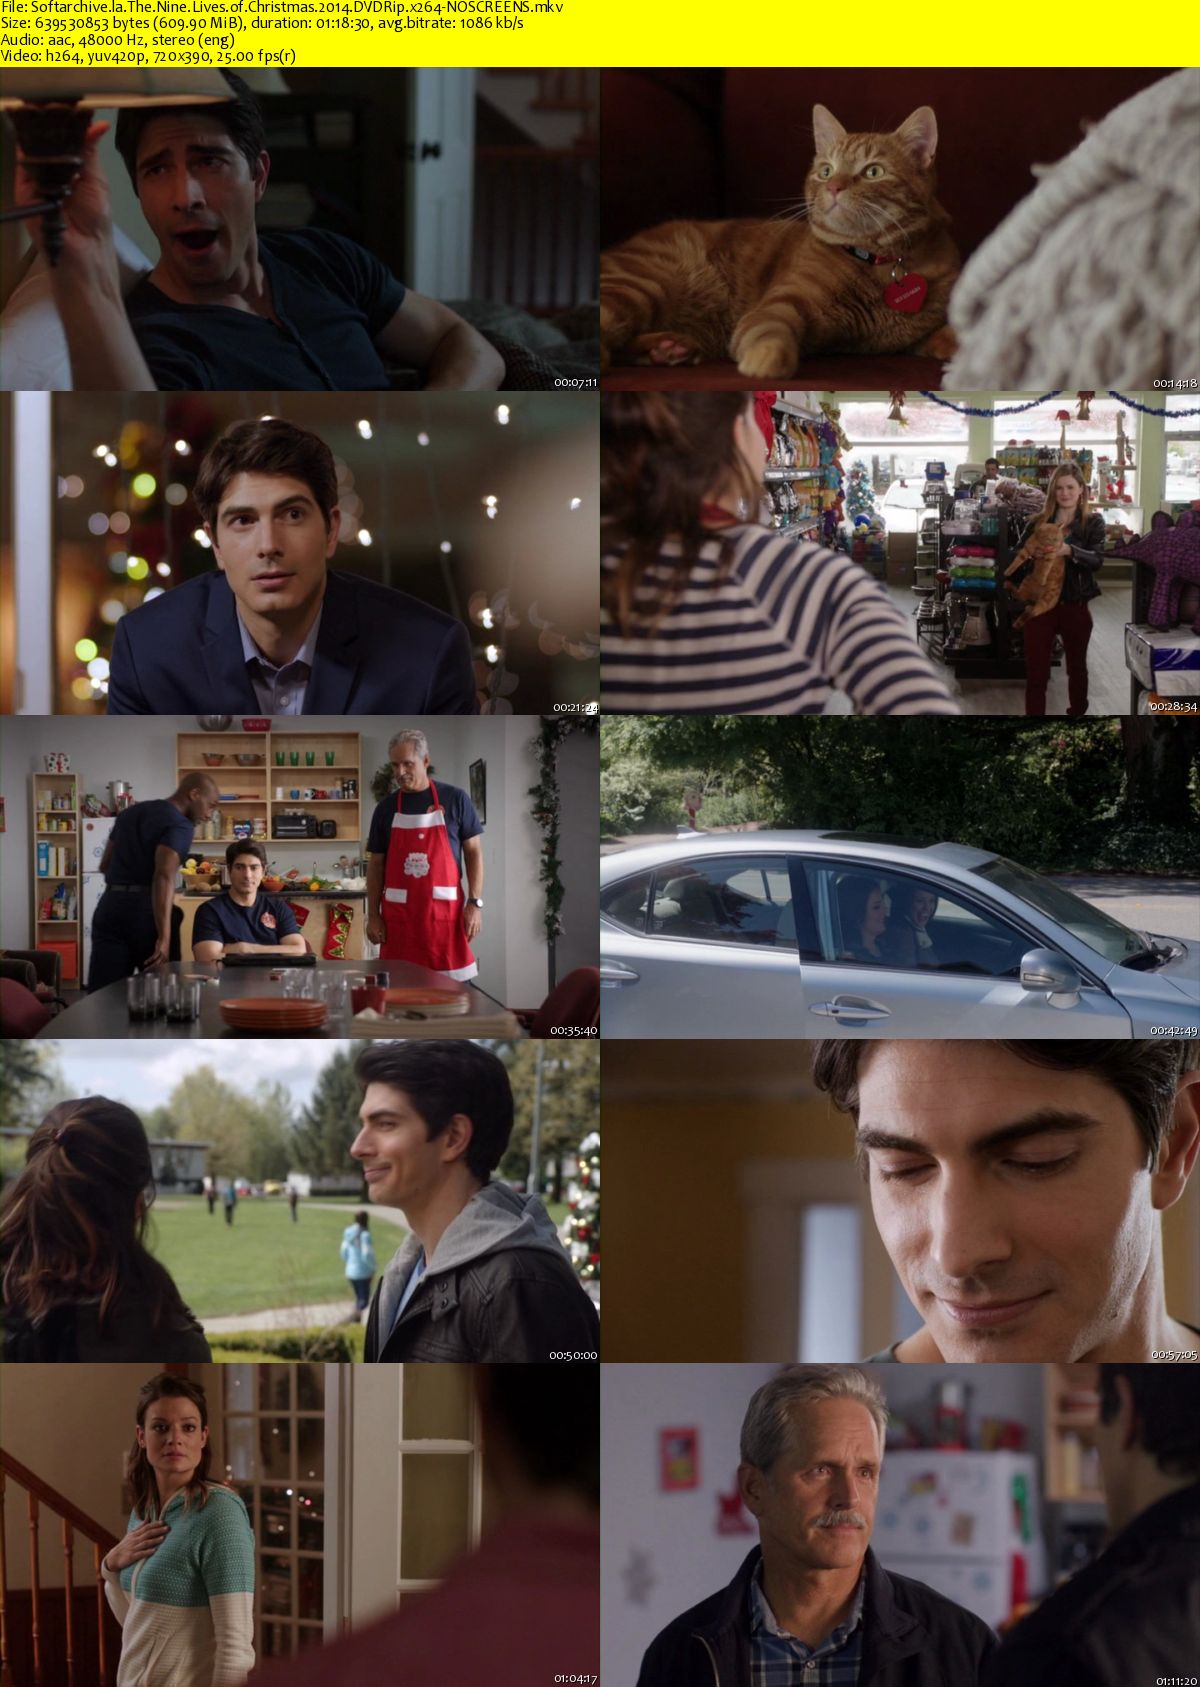 Download The Nine Lives of Christmas 2014 DVDRip x264-NOSCREENS ...